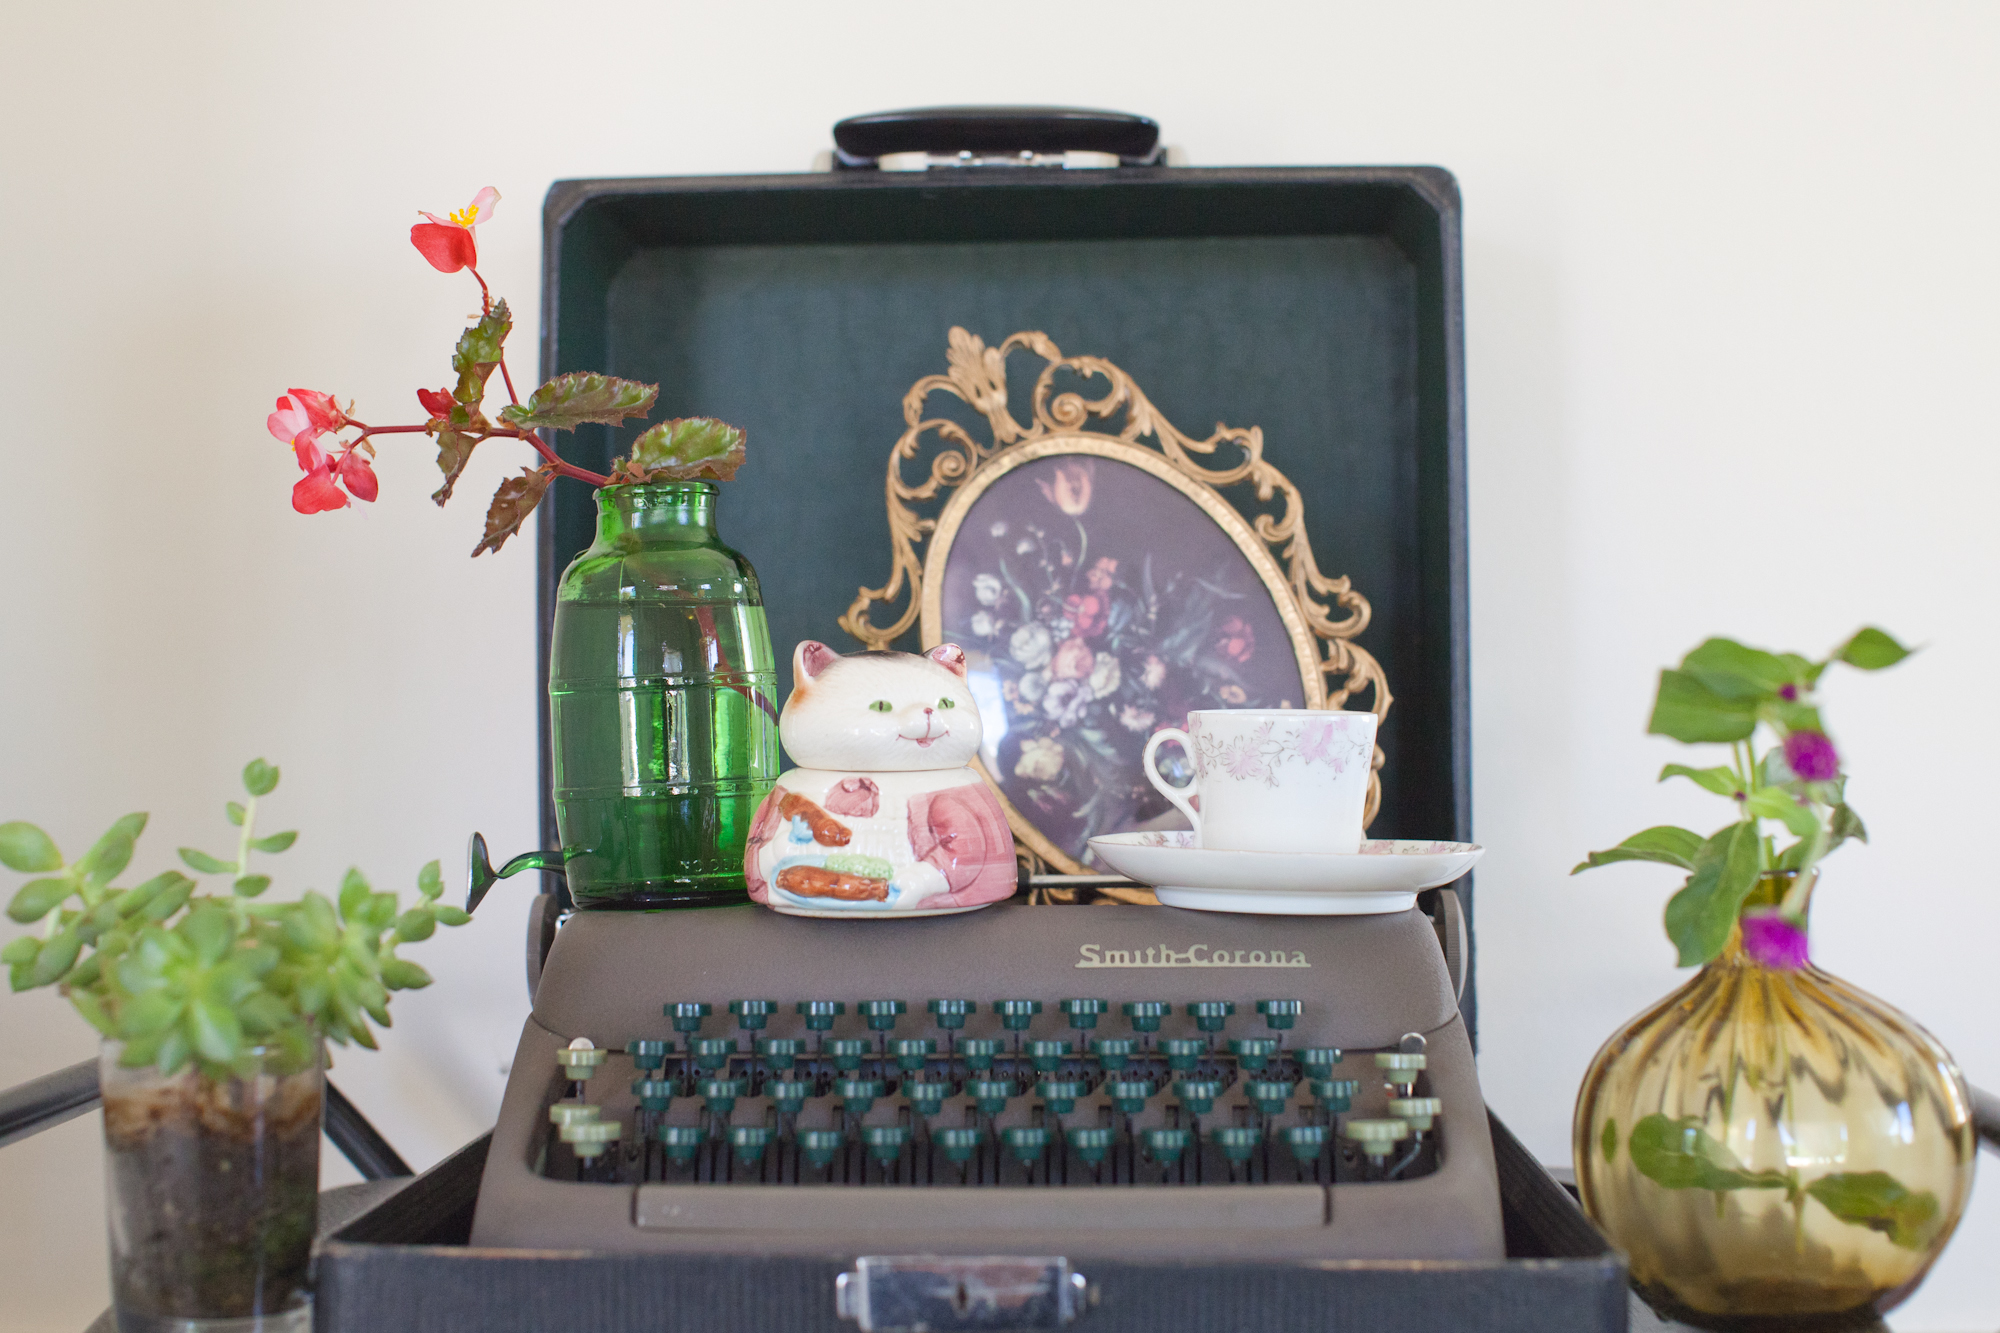 This model was one of the first typewriters to have green keys instead of the standard black! Its a beast!